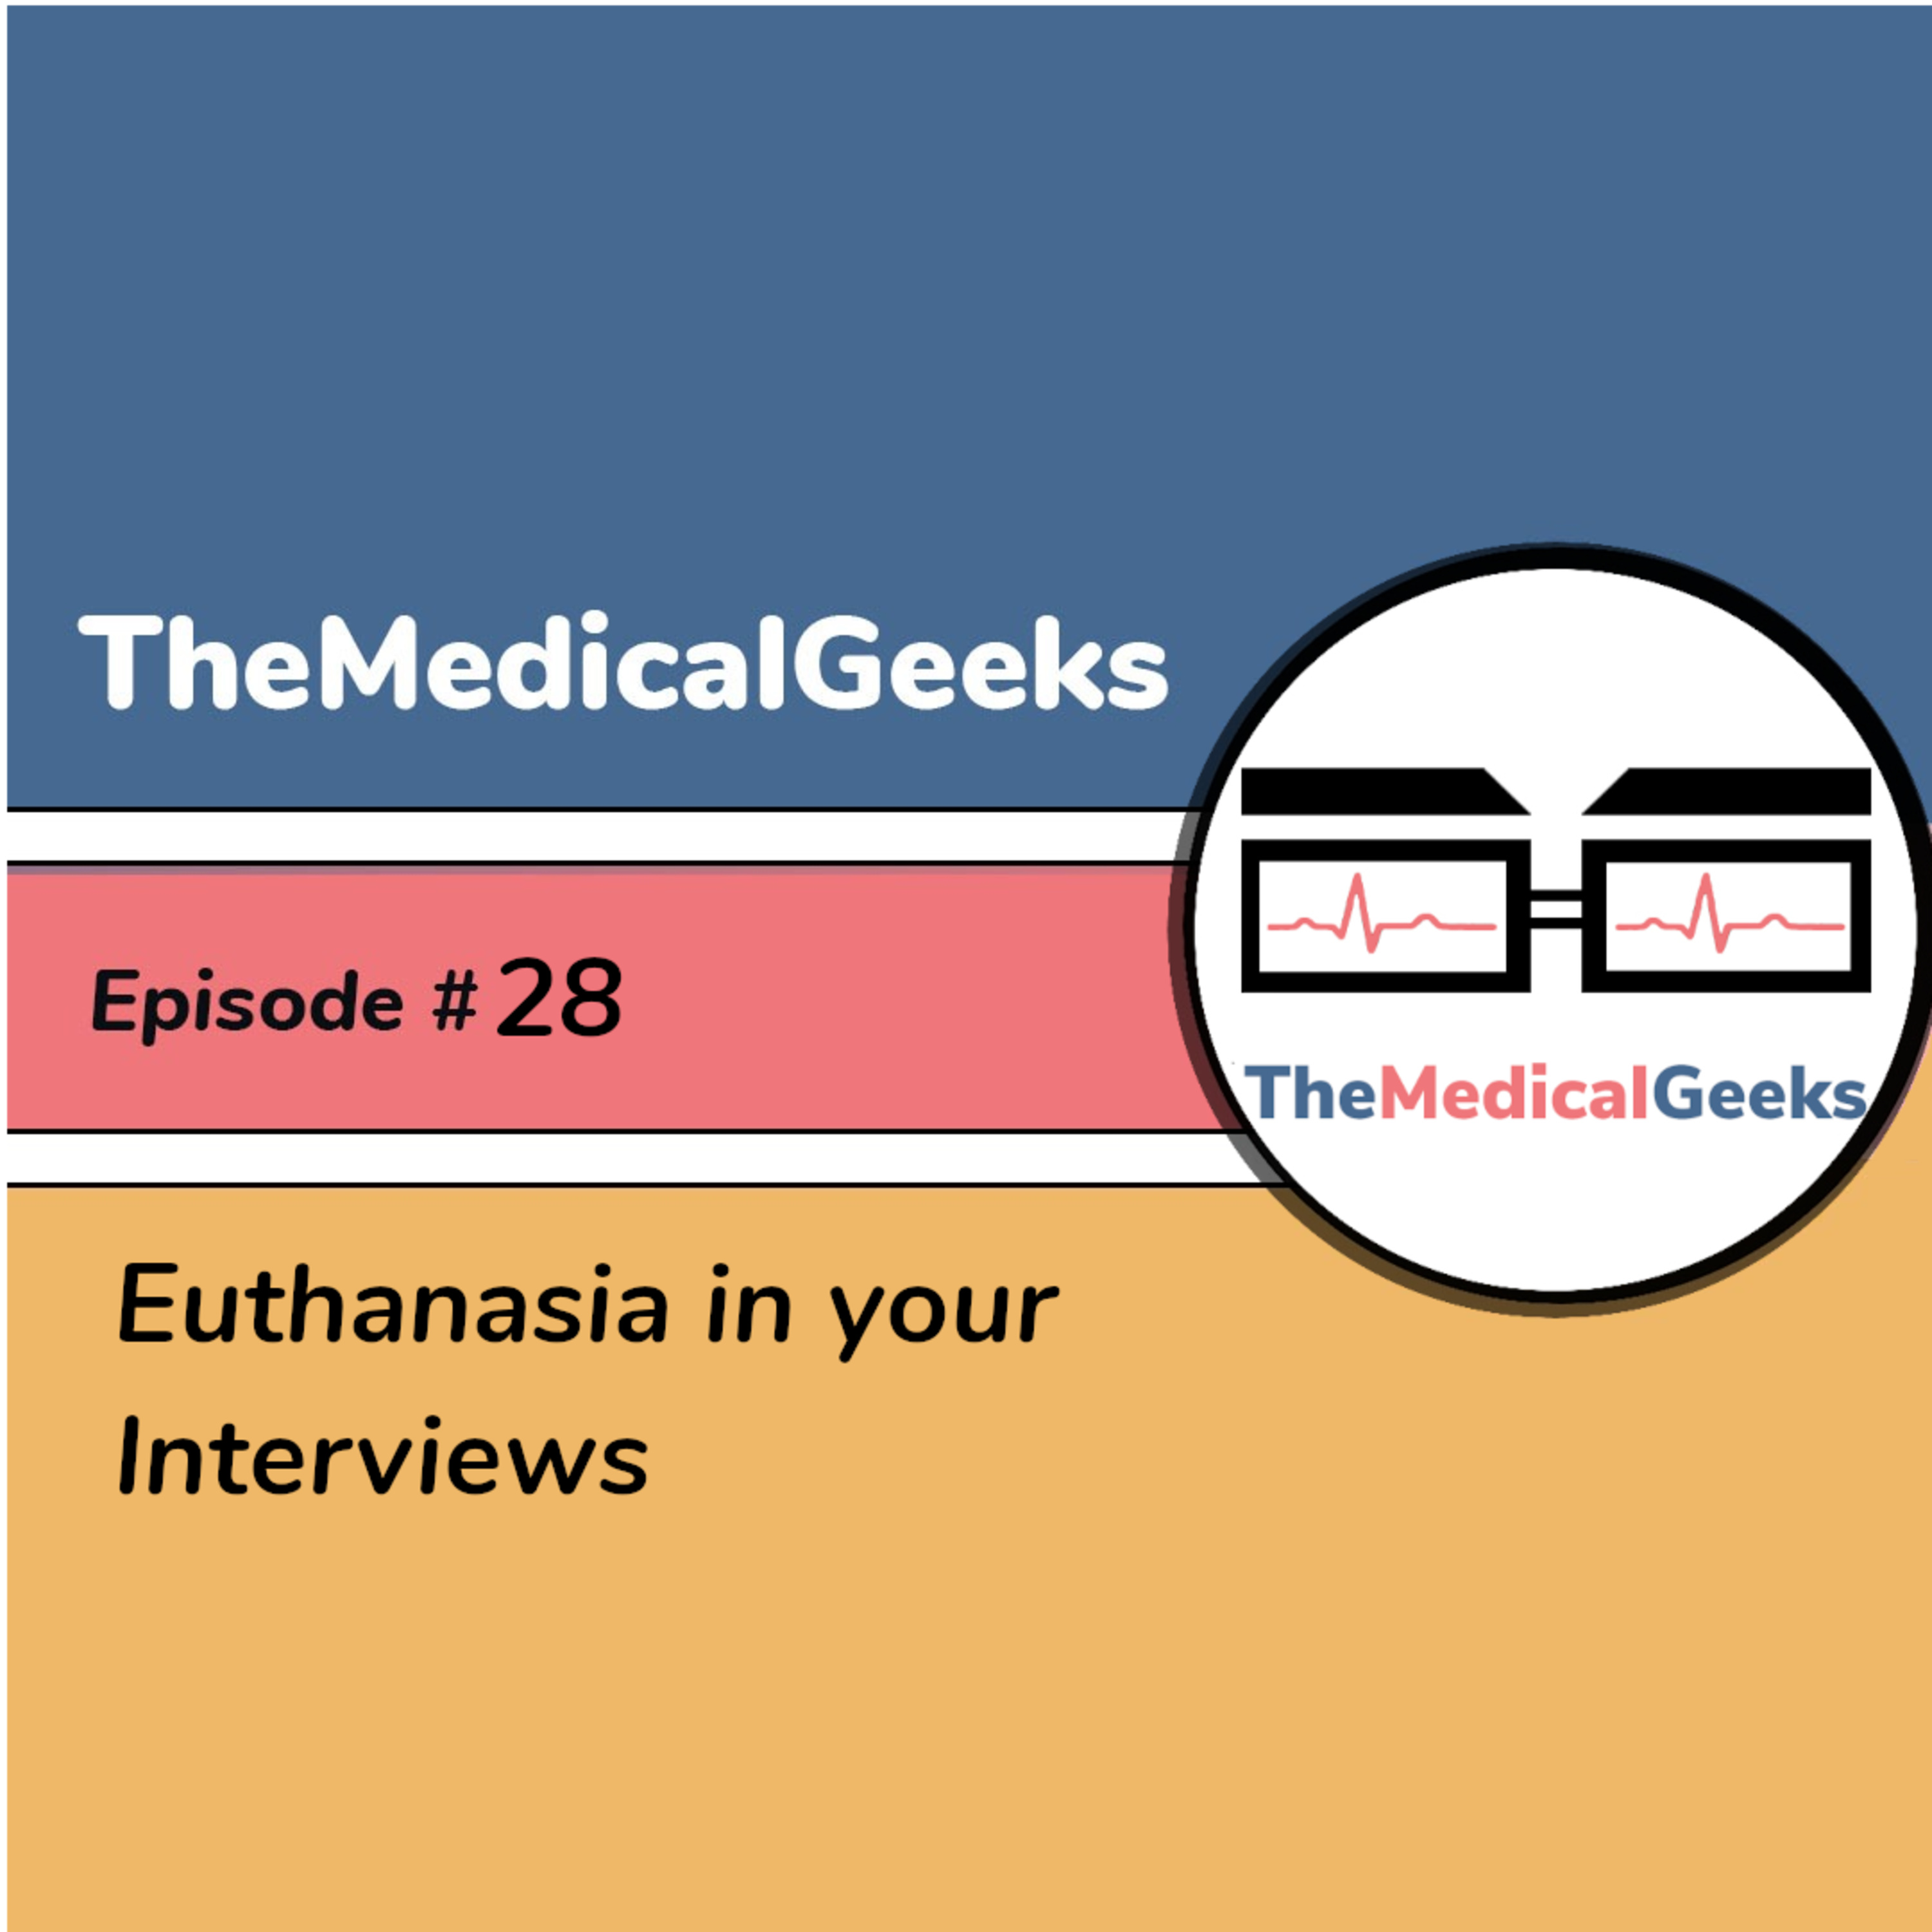 #28 Episode 28: Euthanasia in your interviews